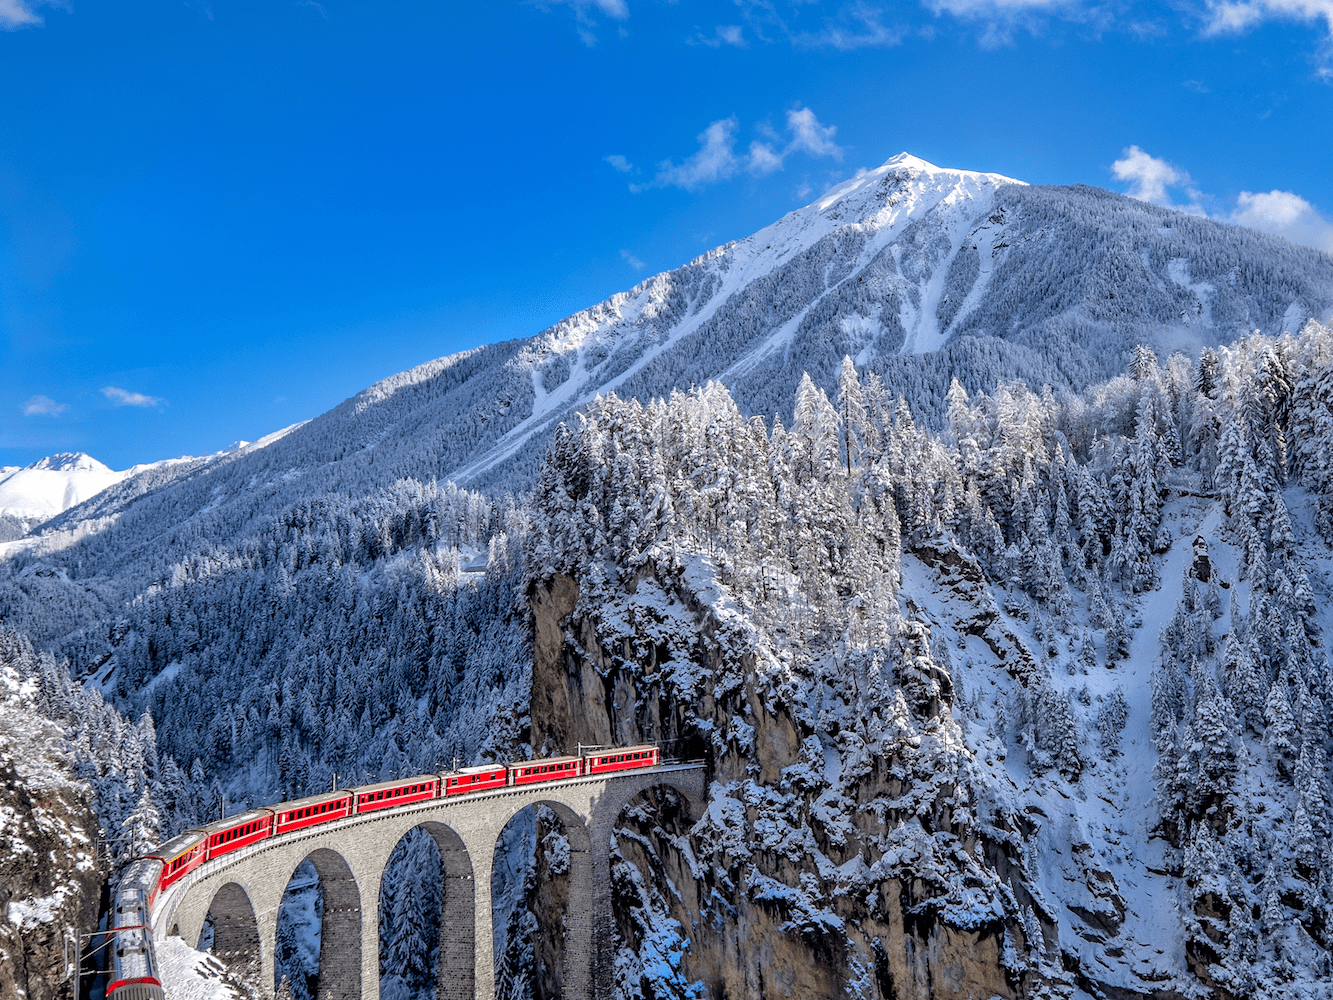 From Zermatt, visitors can take a scenic ride on the glacier express to another popular ski resort, St. Moritz.